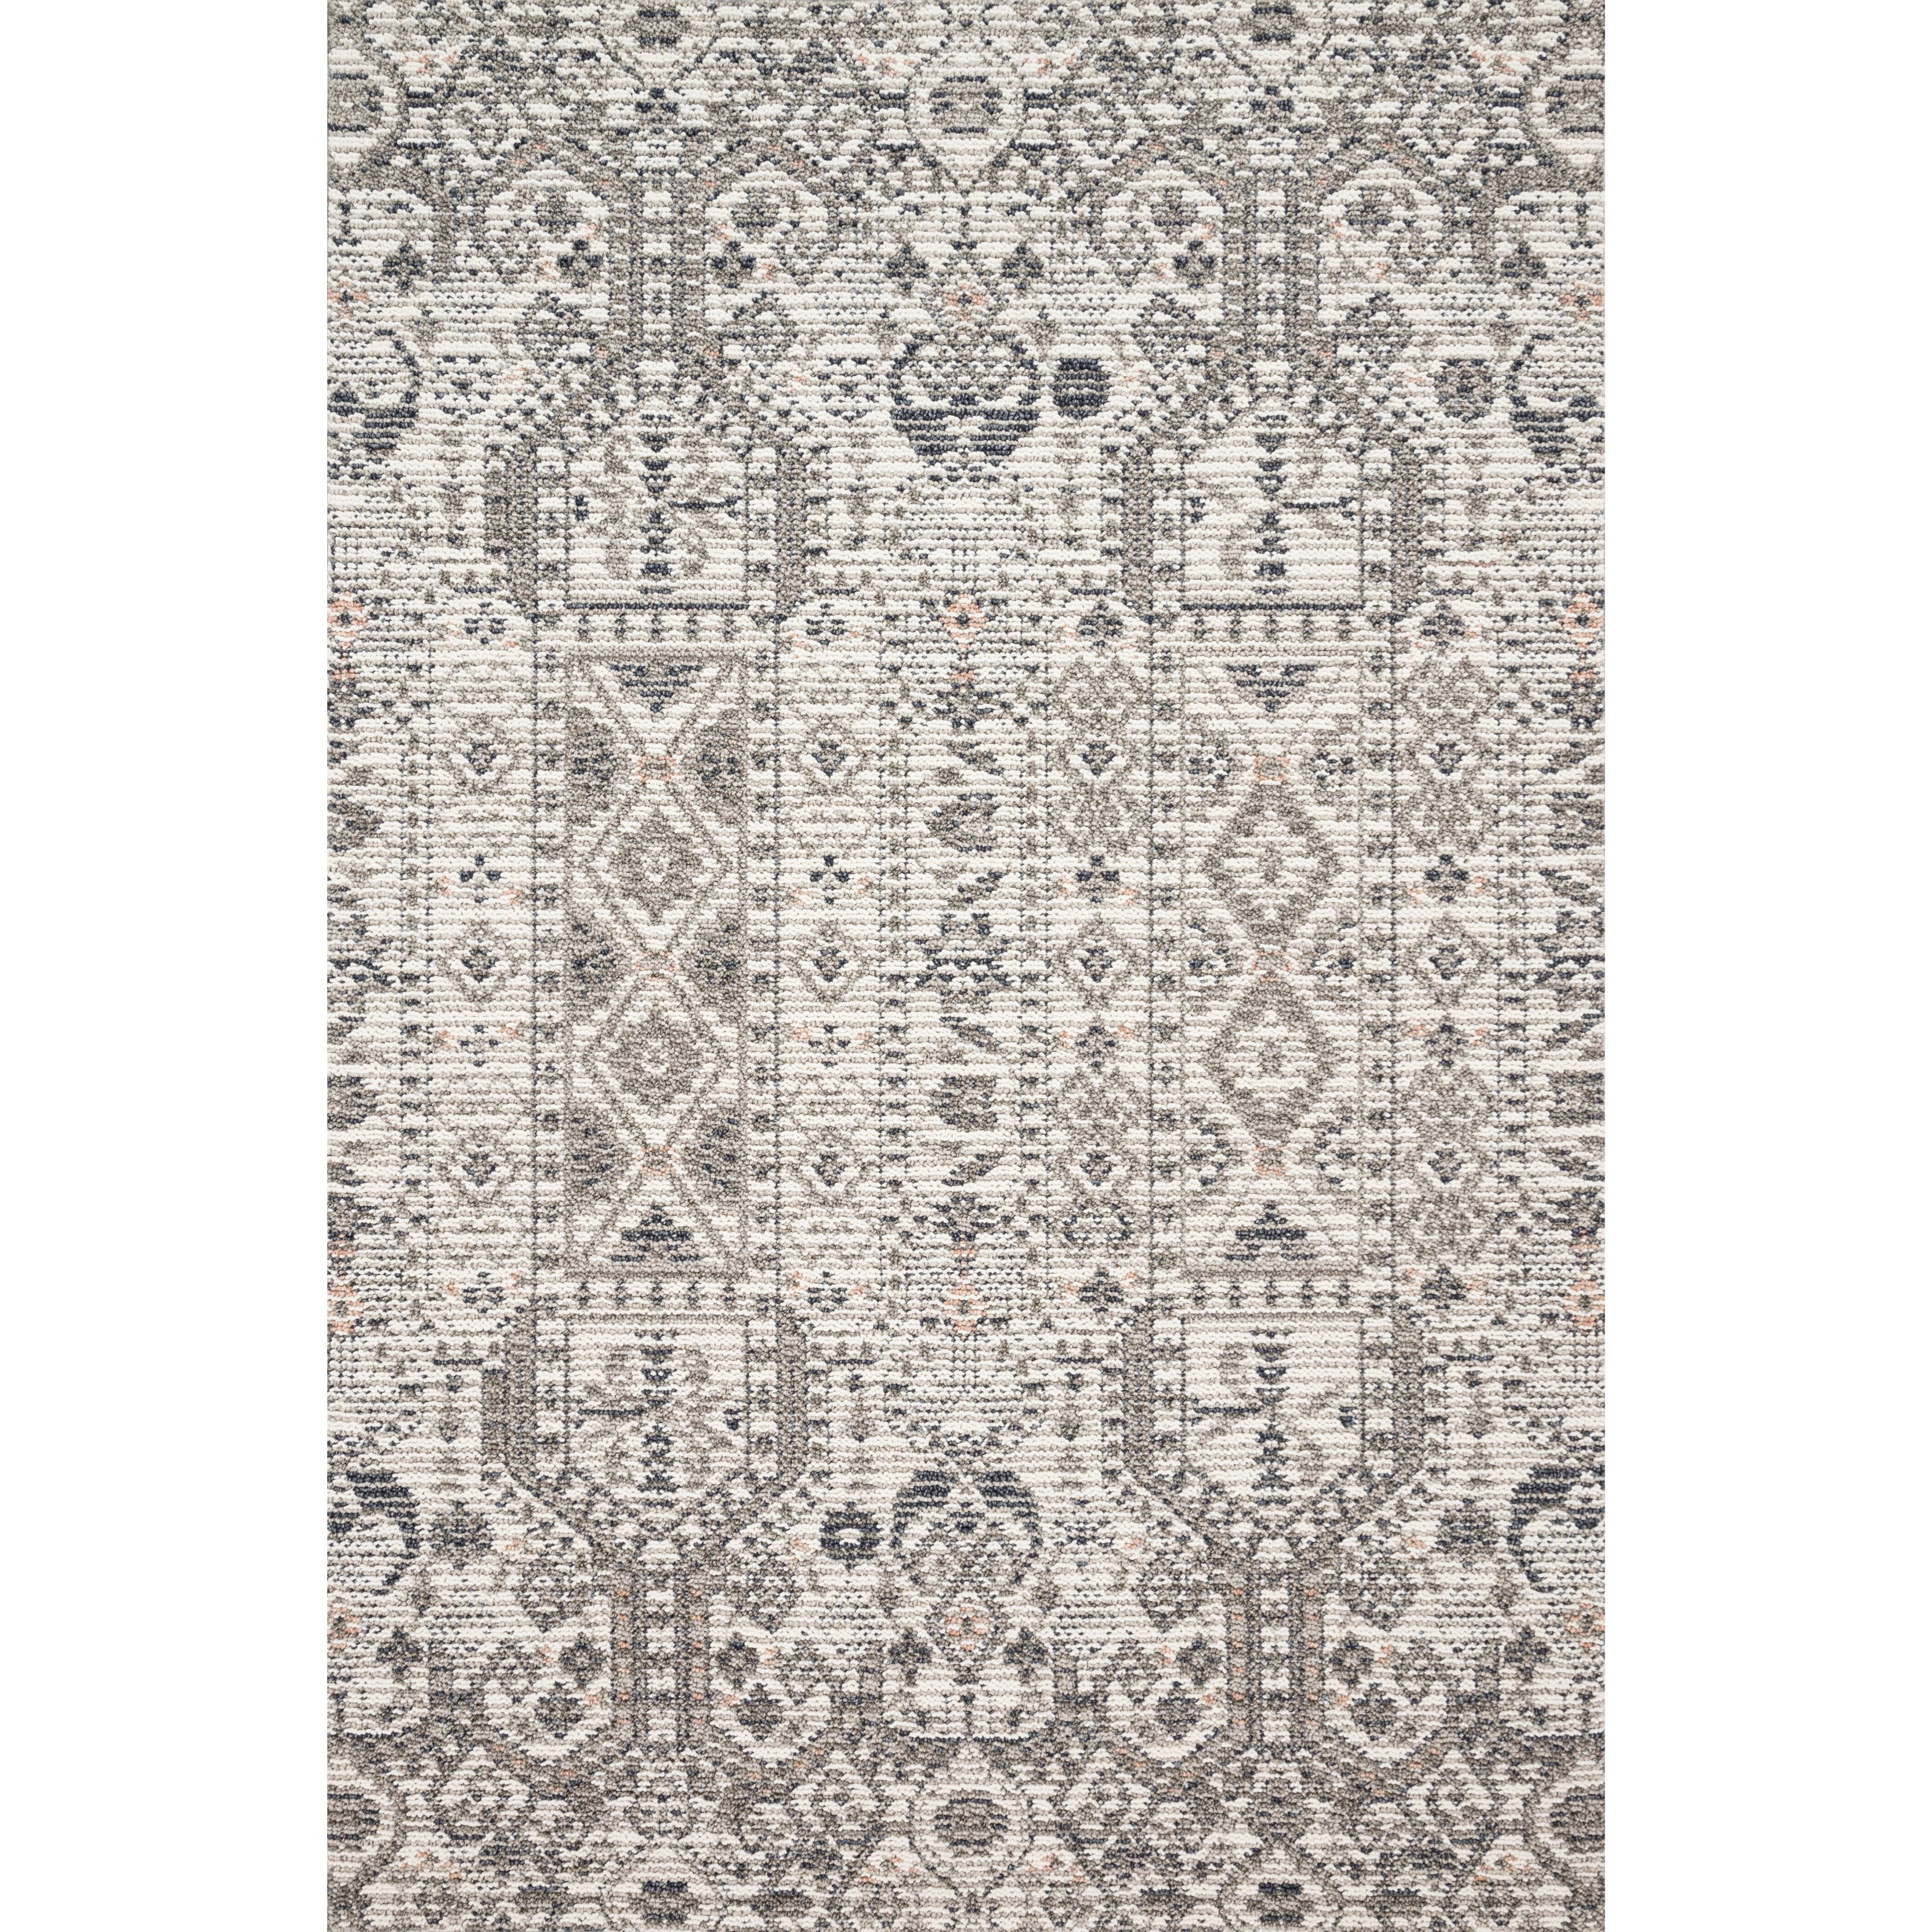 """Cole 5'0"""" x 7'6"""" Ivory / Multi Rug by Loloi Rugs at Virginia Furniture Market"""